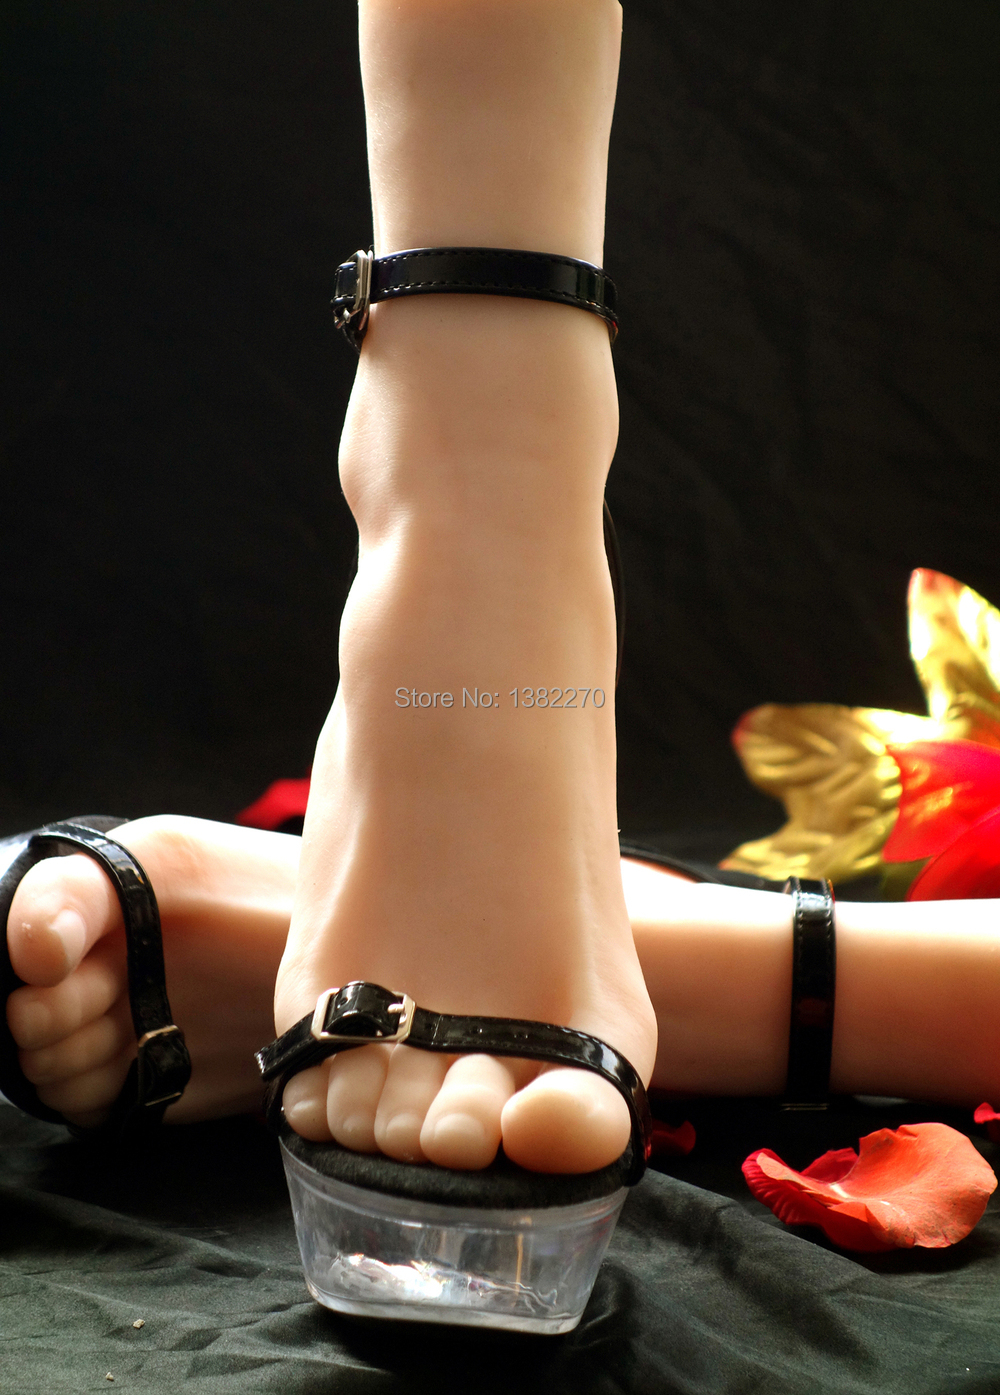 Are not Silicone feet sex toy